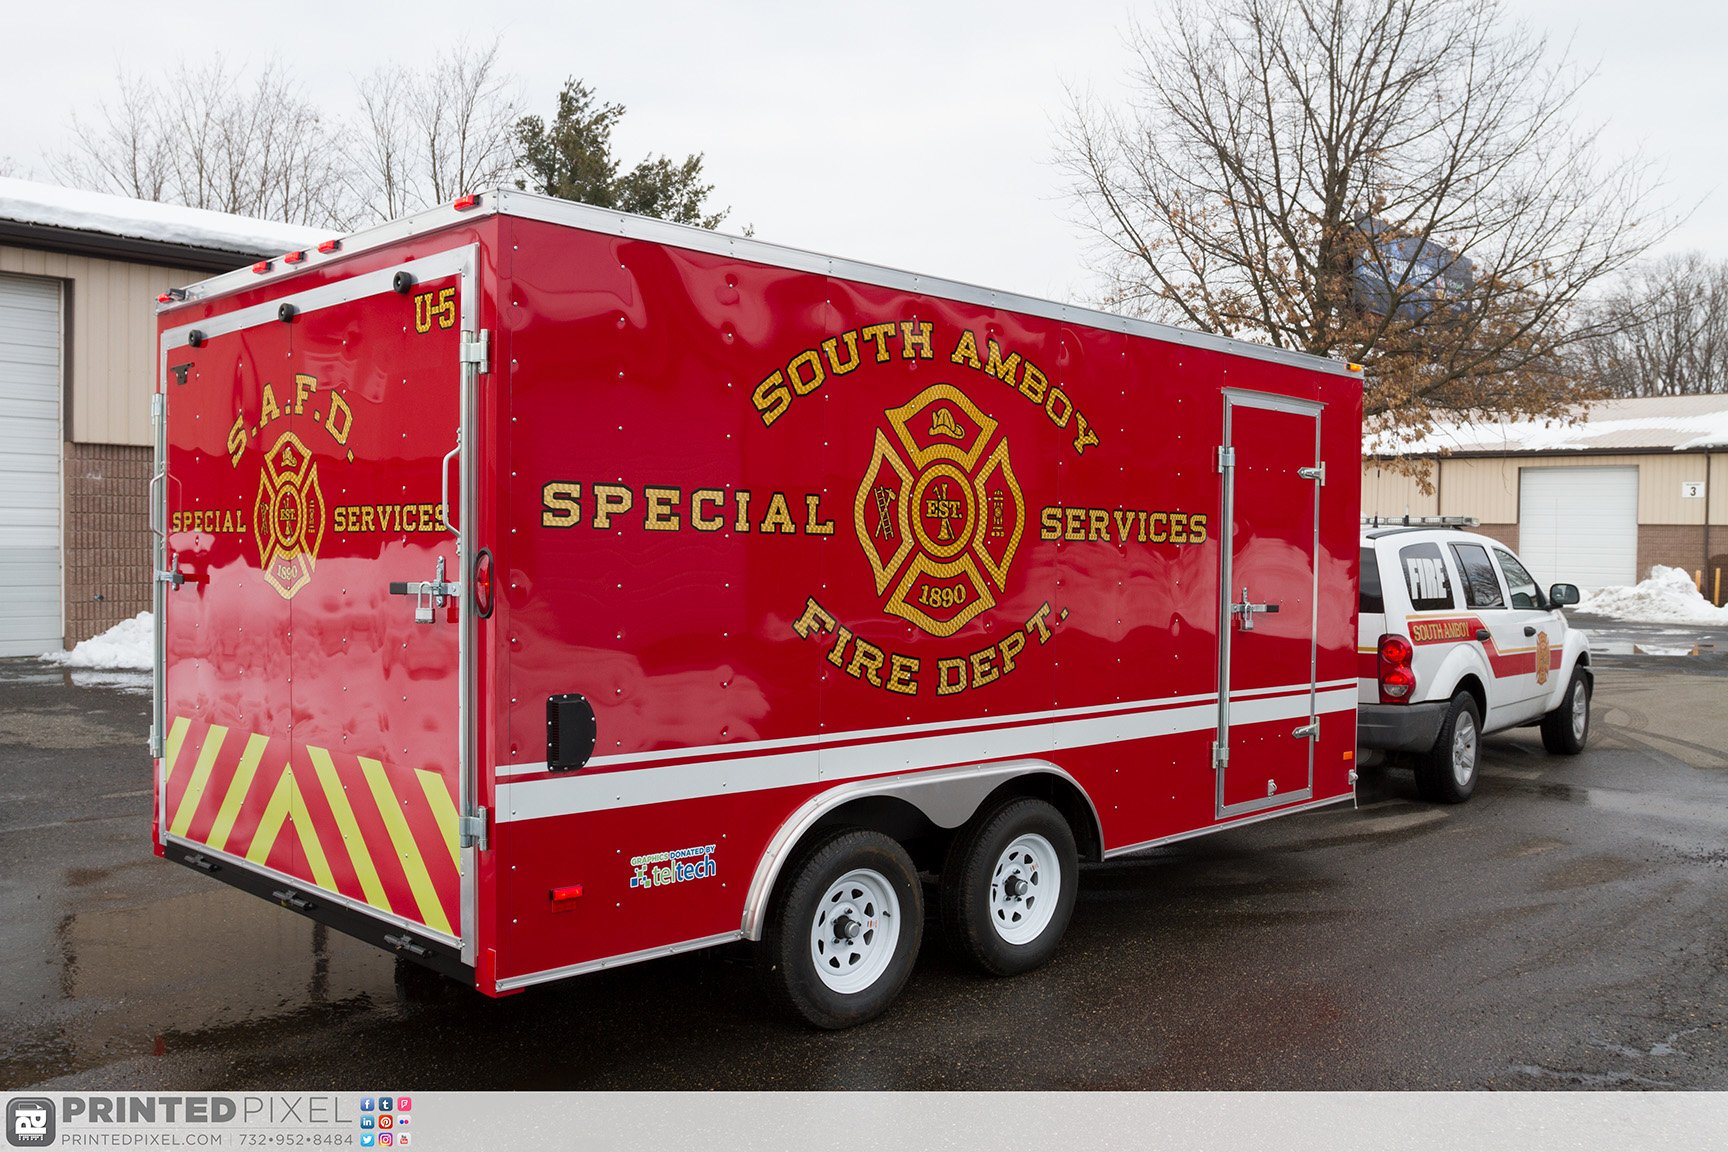 South Amboy Fire Department - Special Services Trailer. Reflective chevrons with engine turned gold overlays.